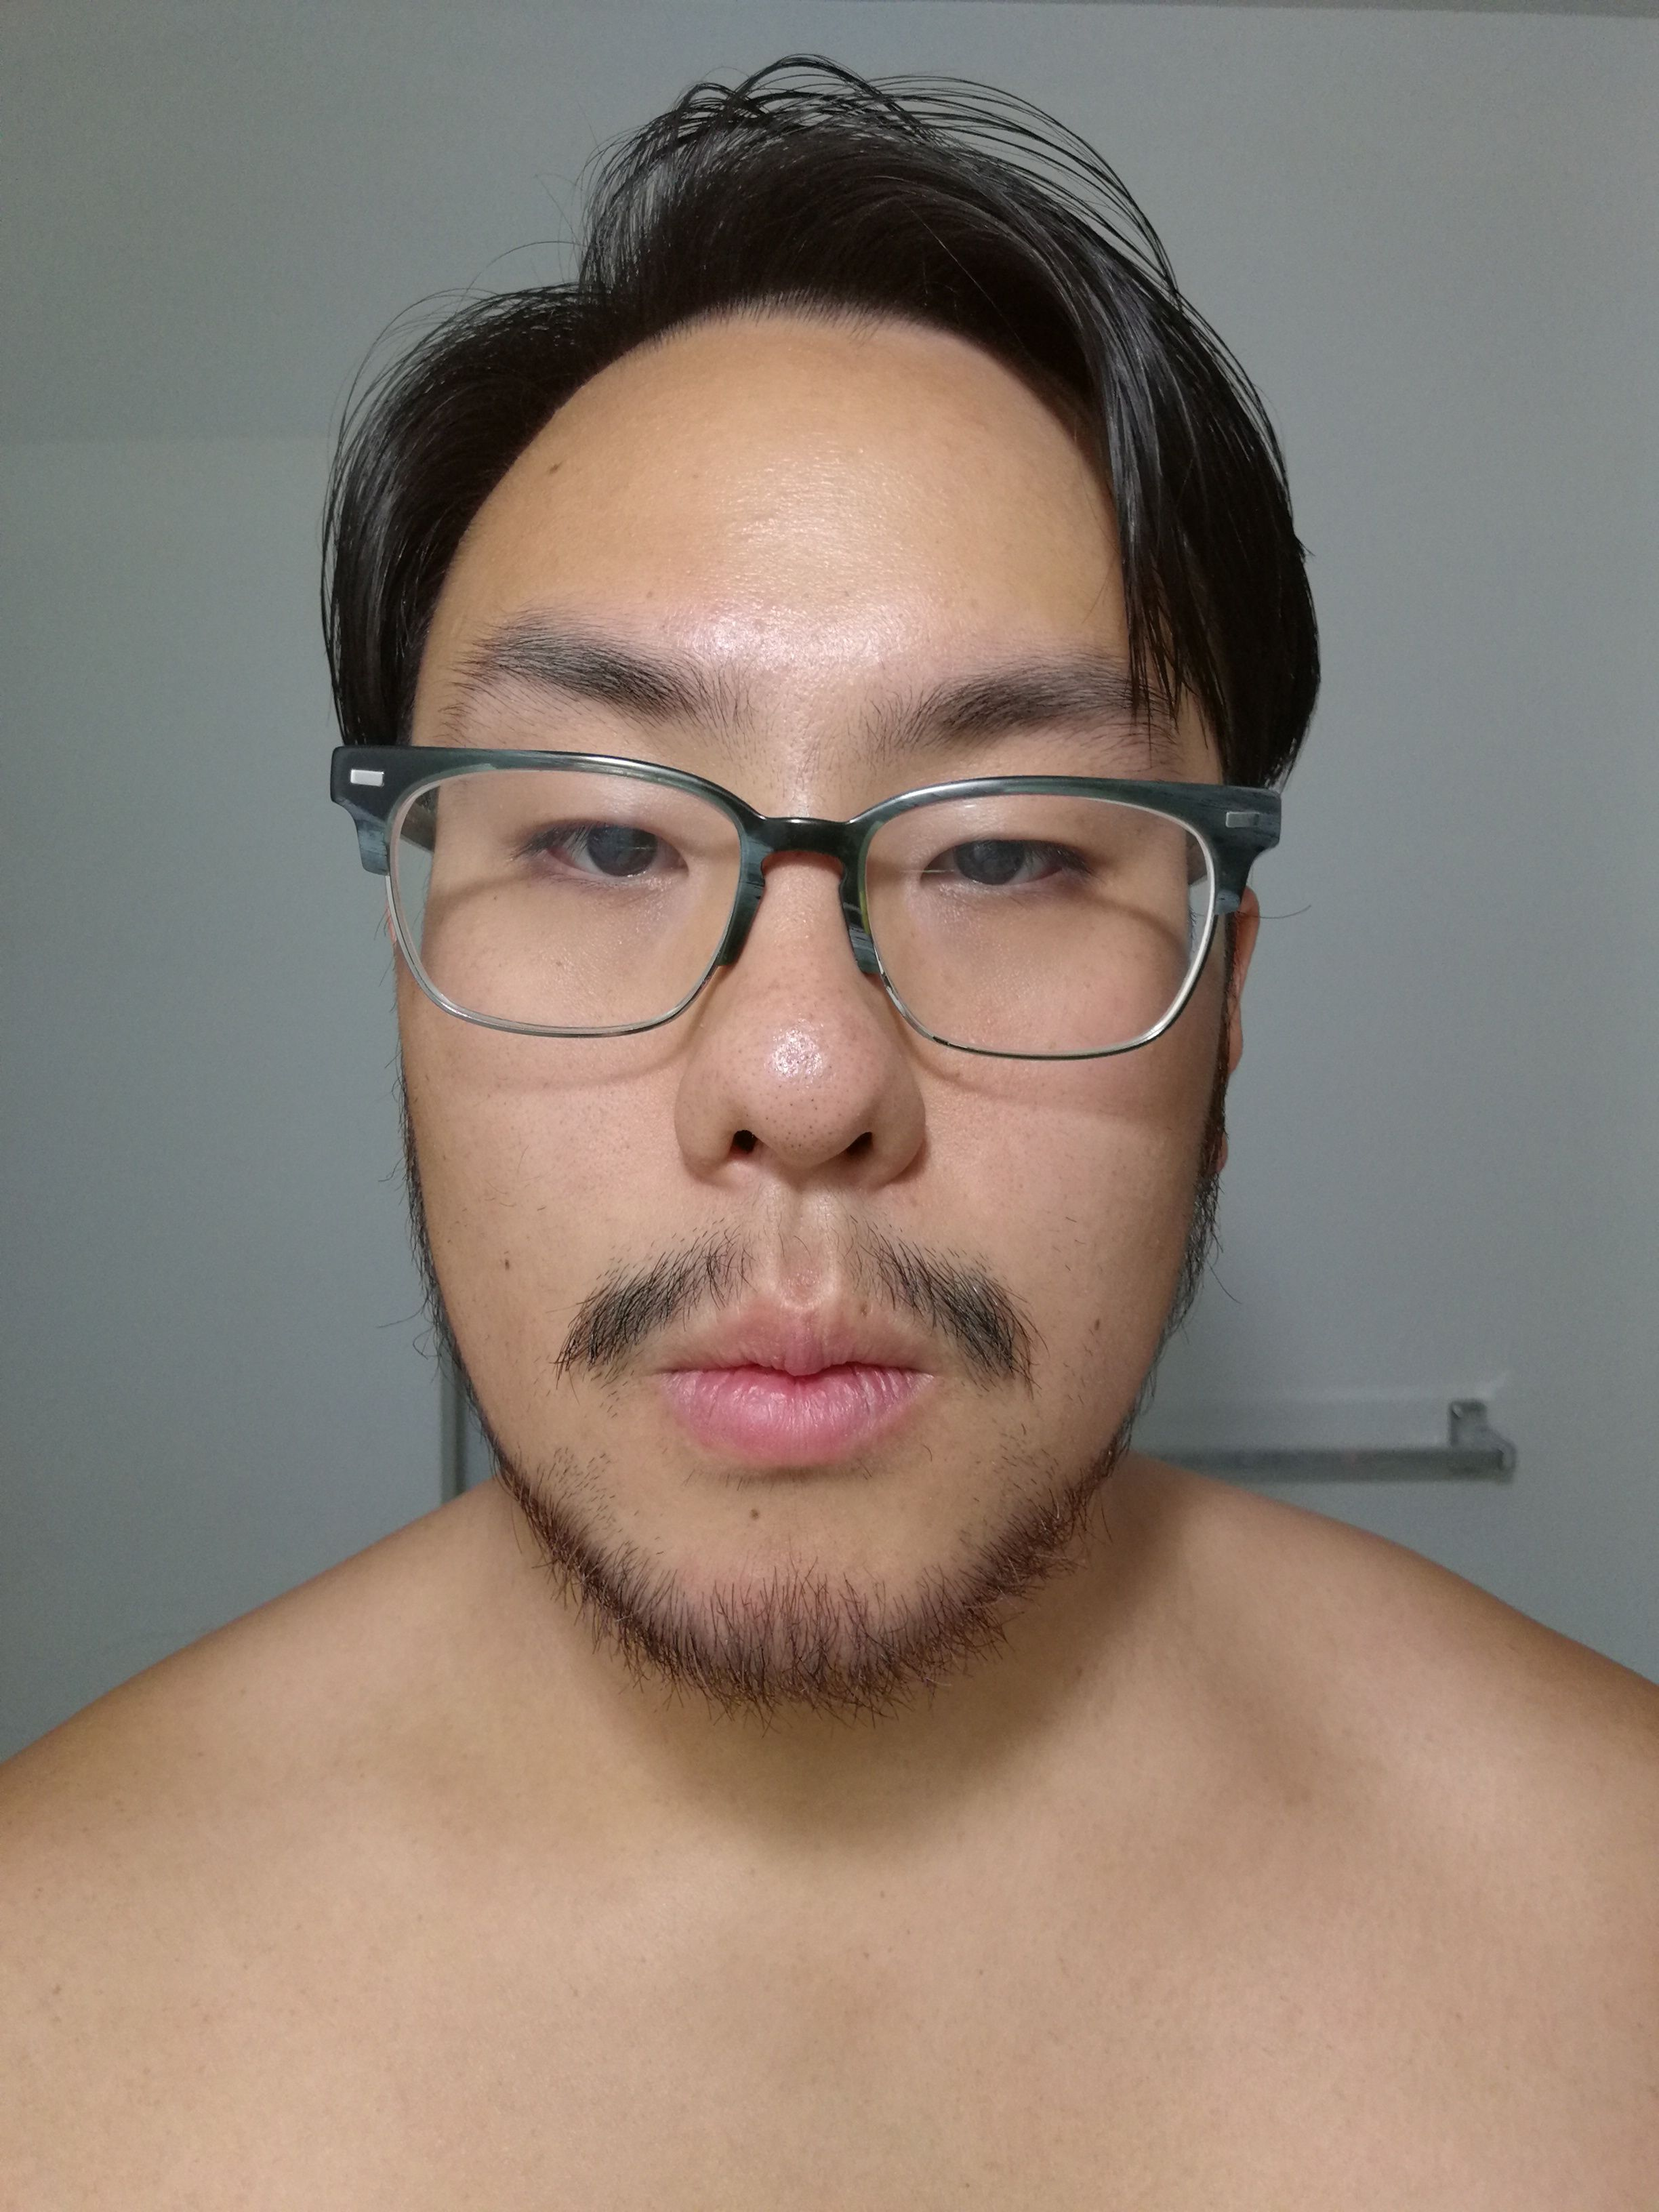 Shave or not shave